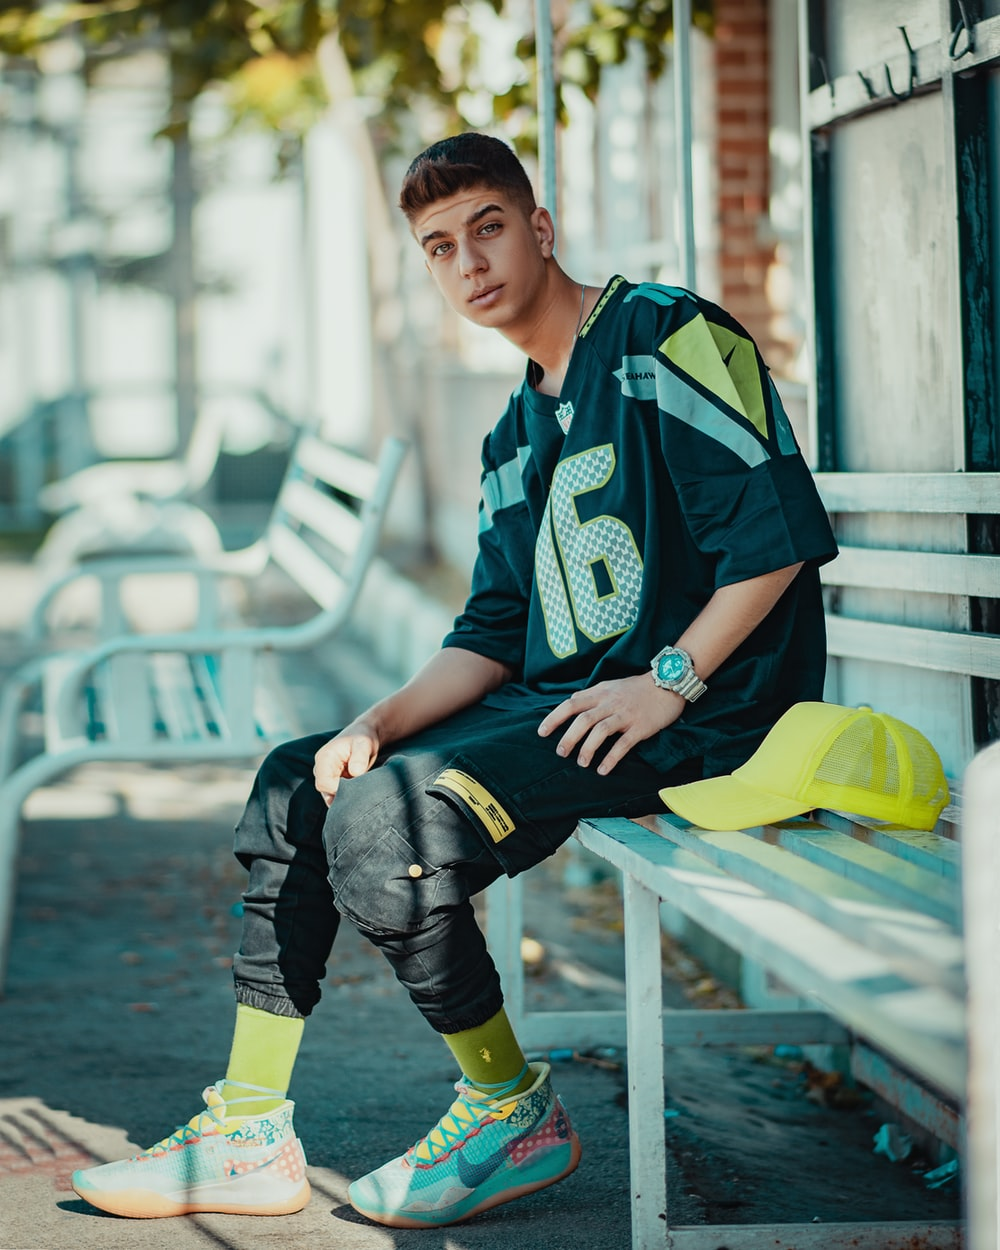 boy in green and white camouflage jacket sitting on yellow plastic chair